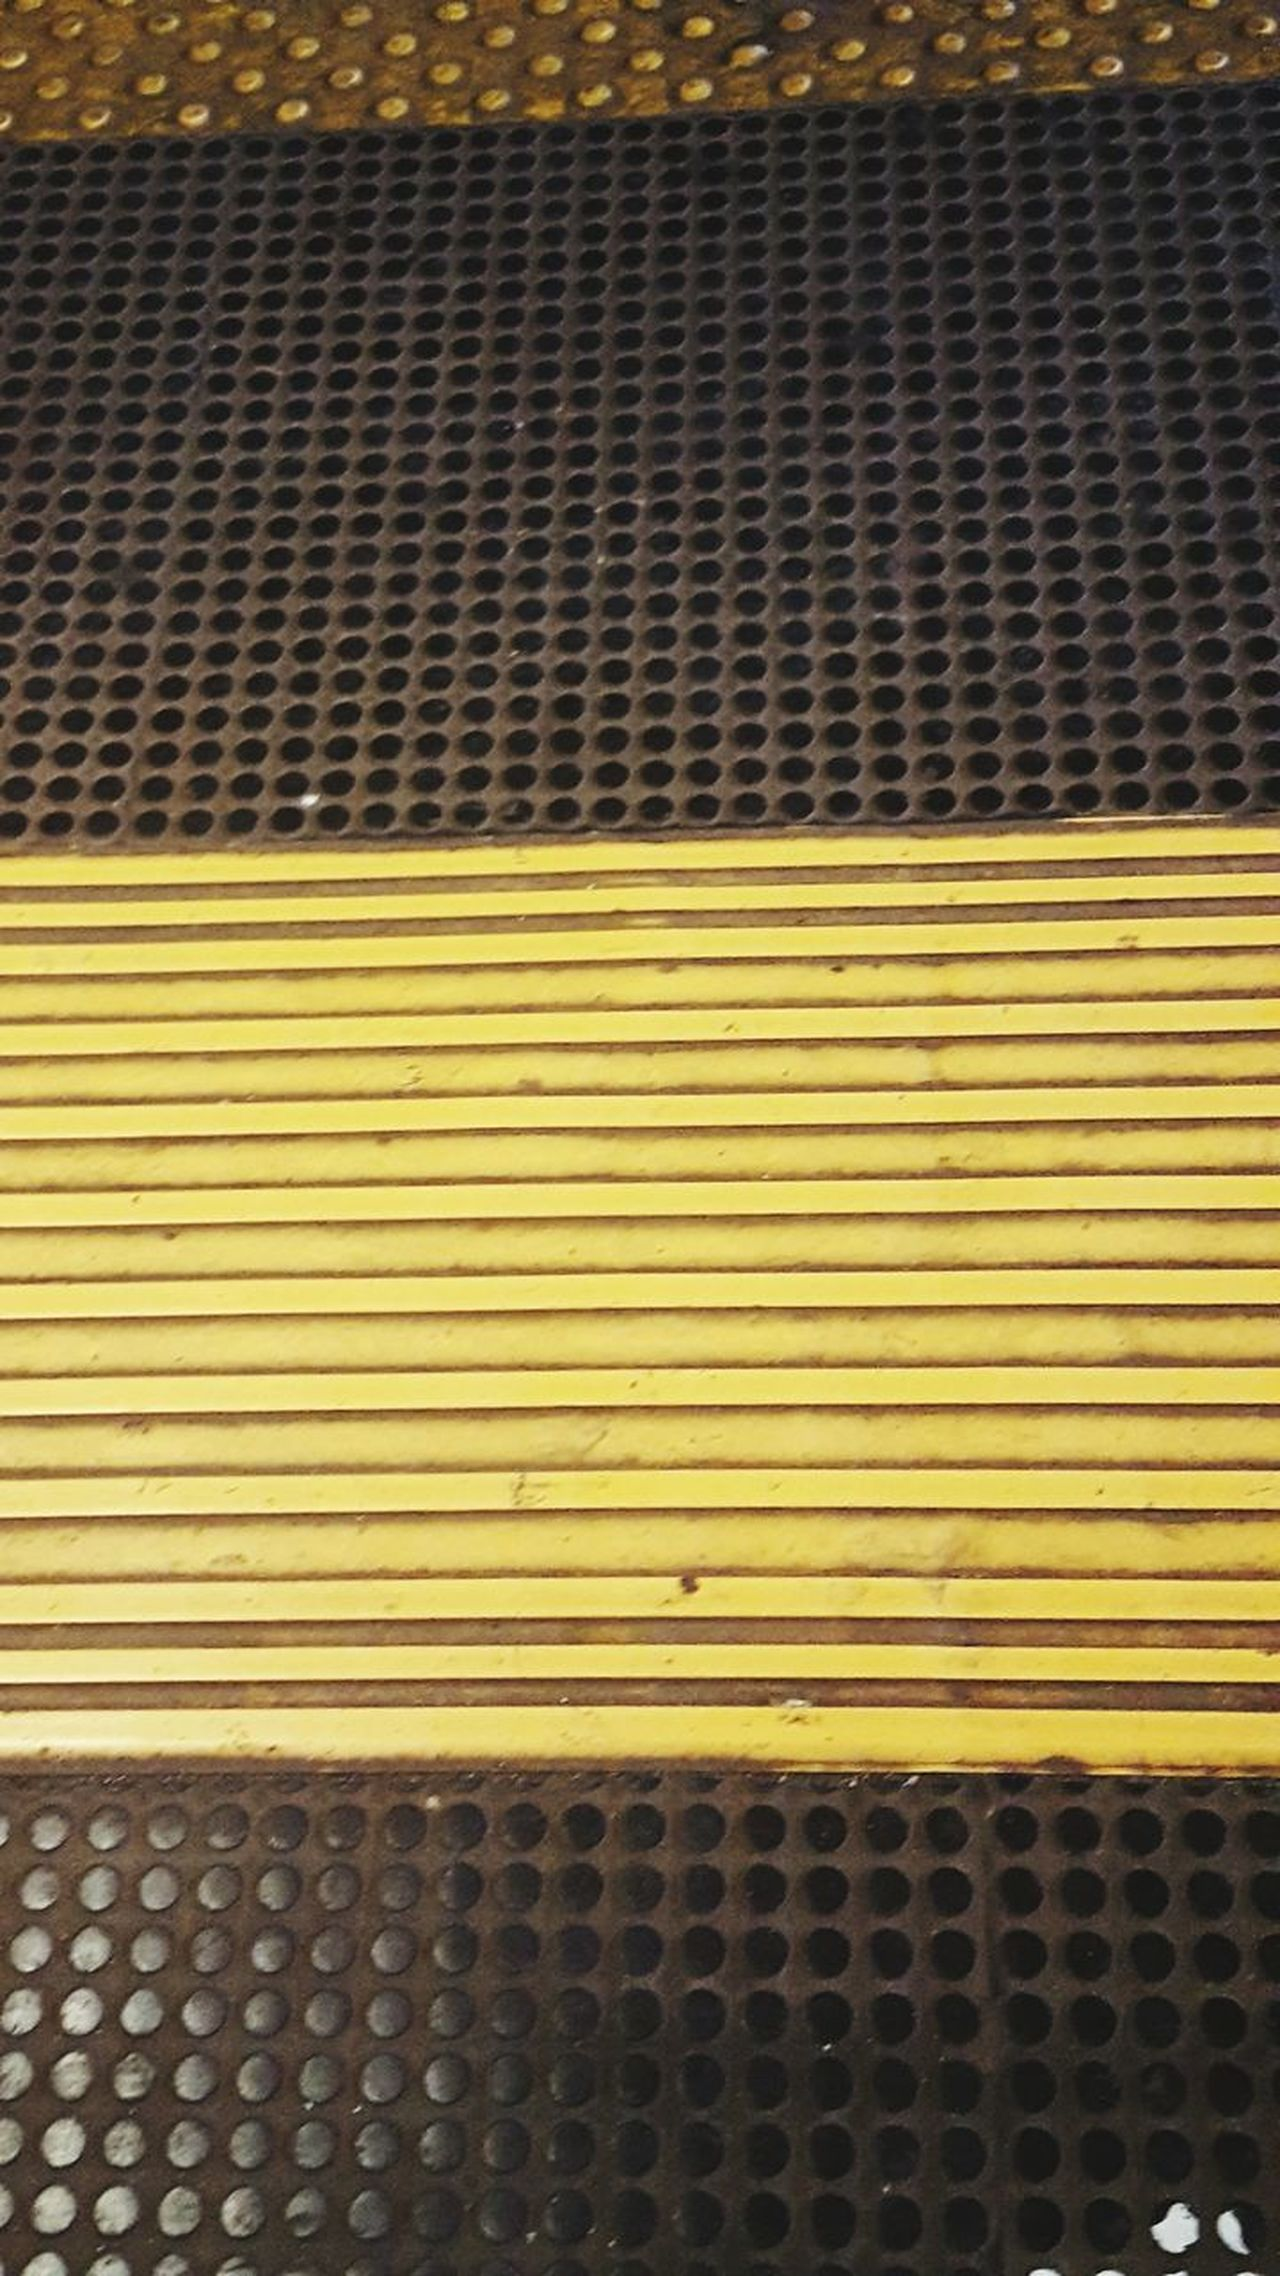 Pattern Yellow Textured  High Angle View No People Day Full Frame Outdoors Close-up Architecture Industrial Italia Italy🇮🇹 Metro Station Metro Piave Napoli ❤ Napoli Industry Urbanphotography Subway Train Rail Transportation Transportation Railroad Station Platform Public Transportation